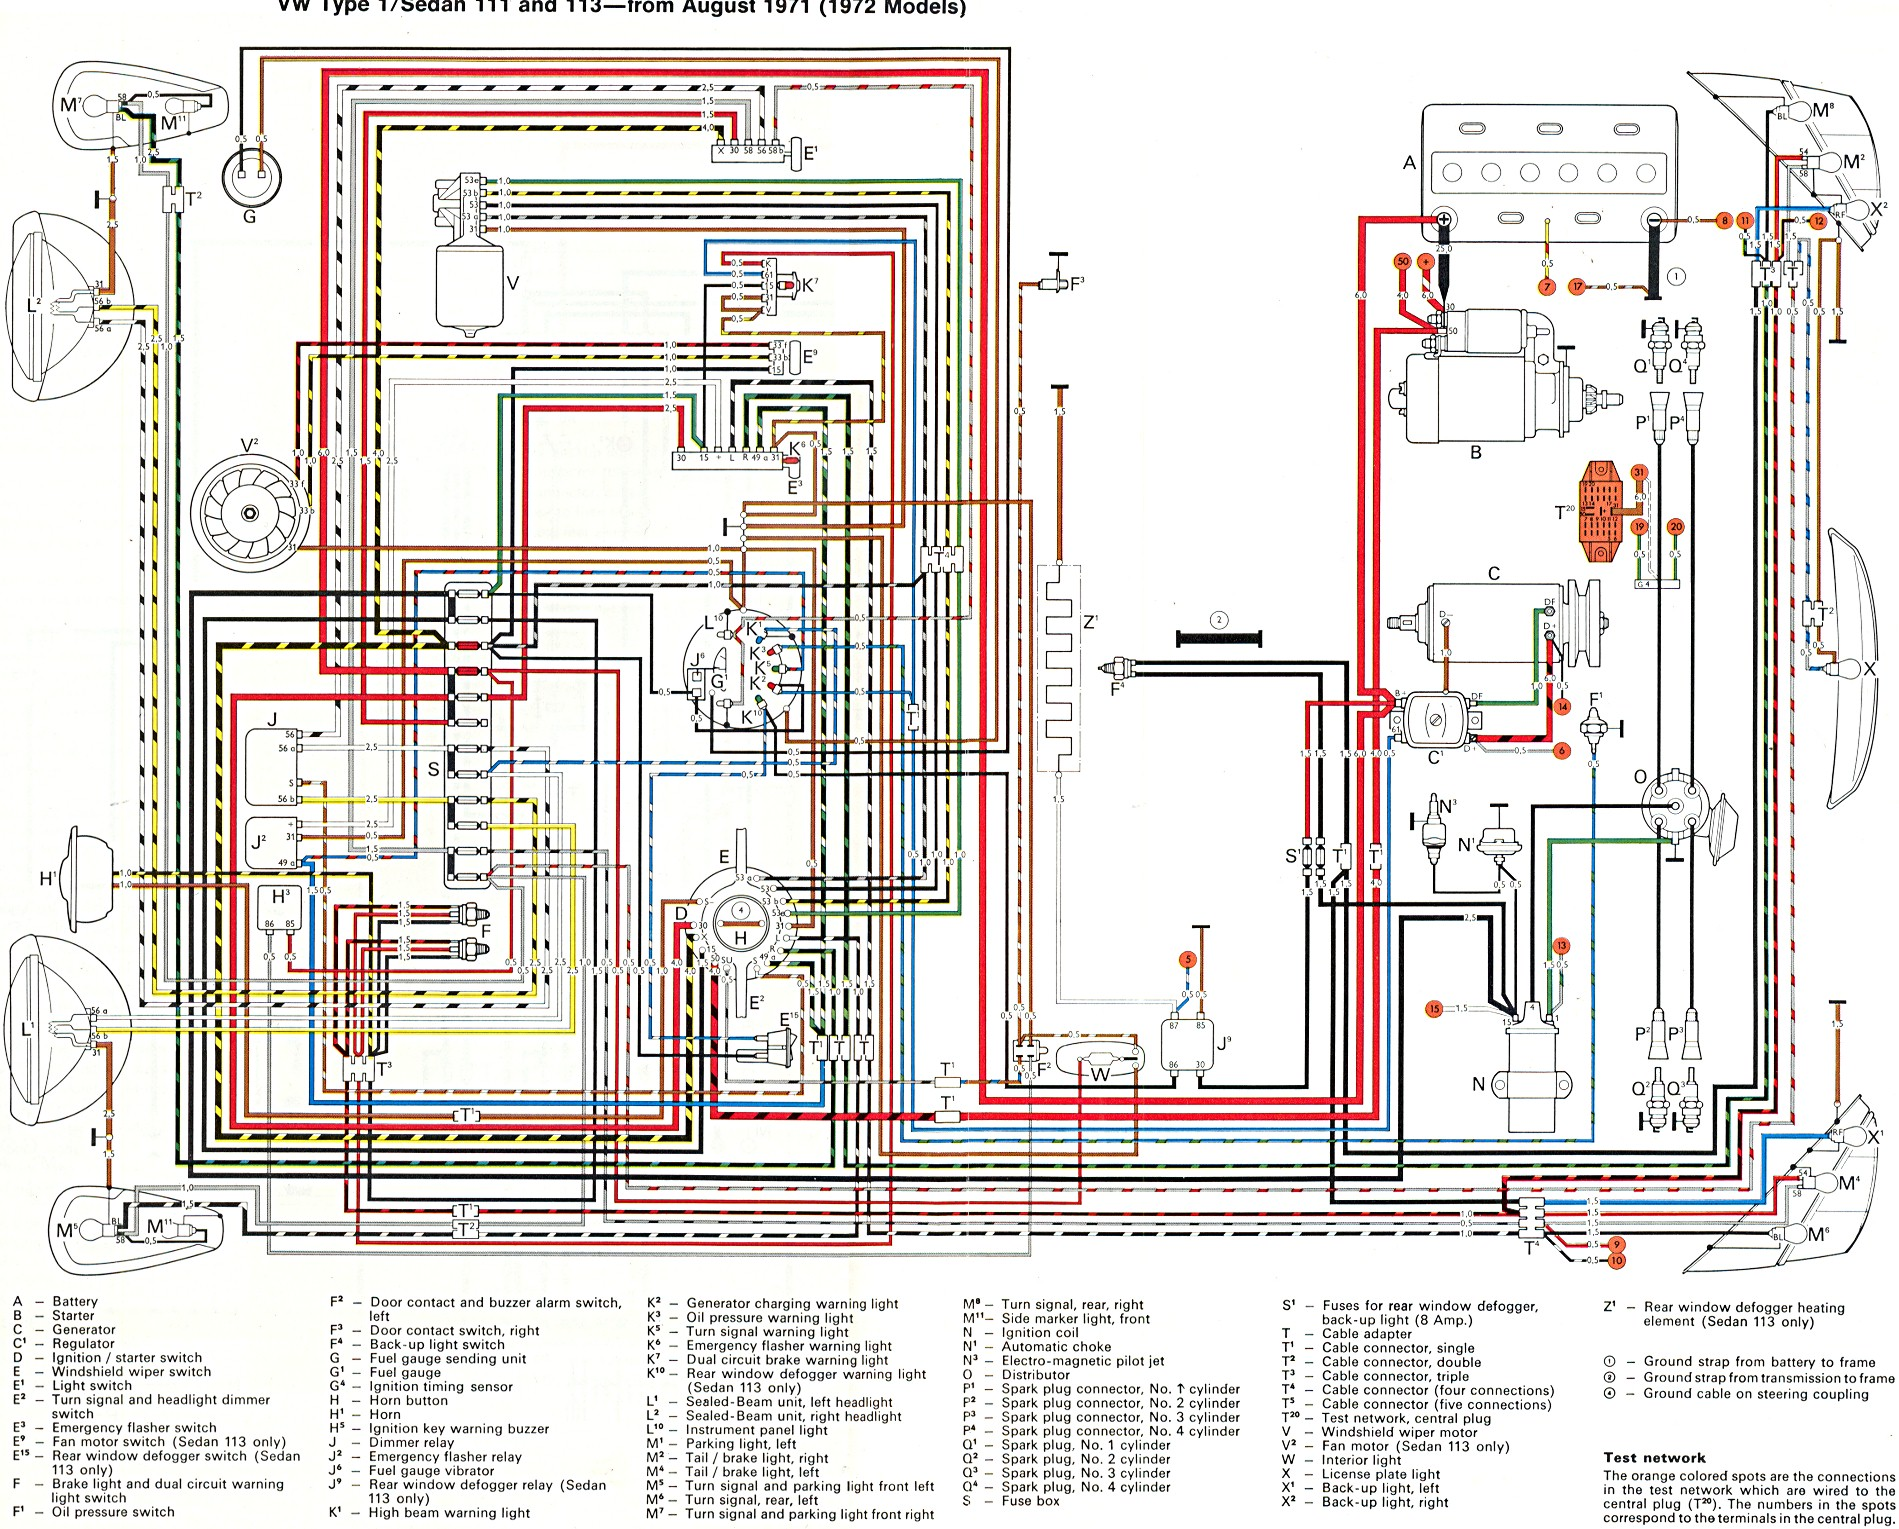 72 Vw Bus Engine Diagram on wiringghia